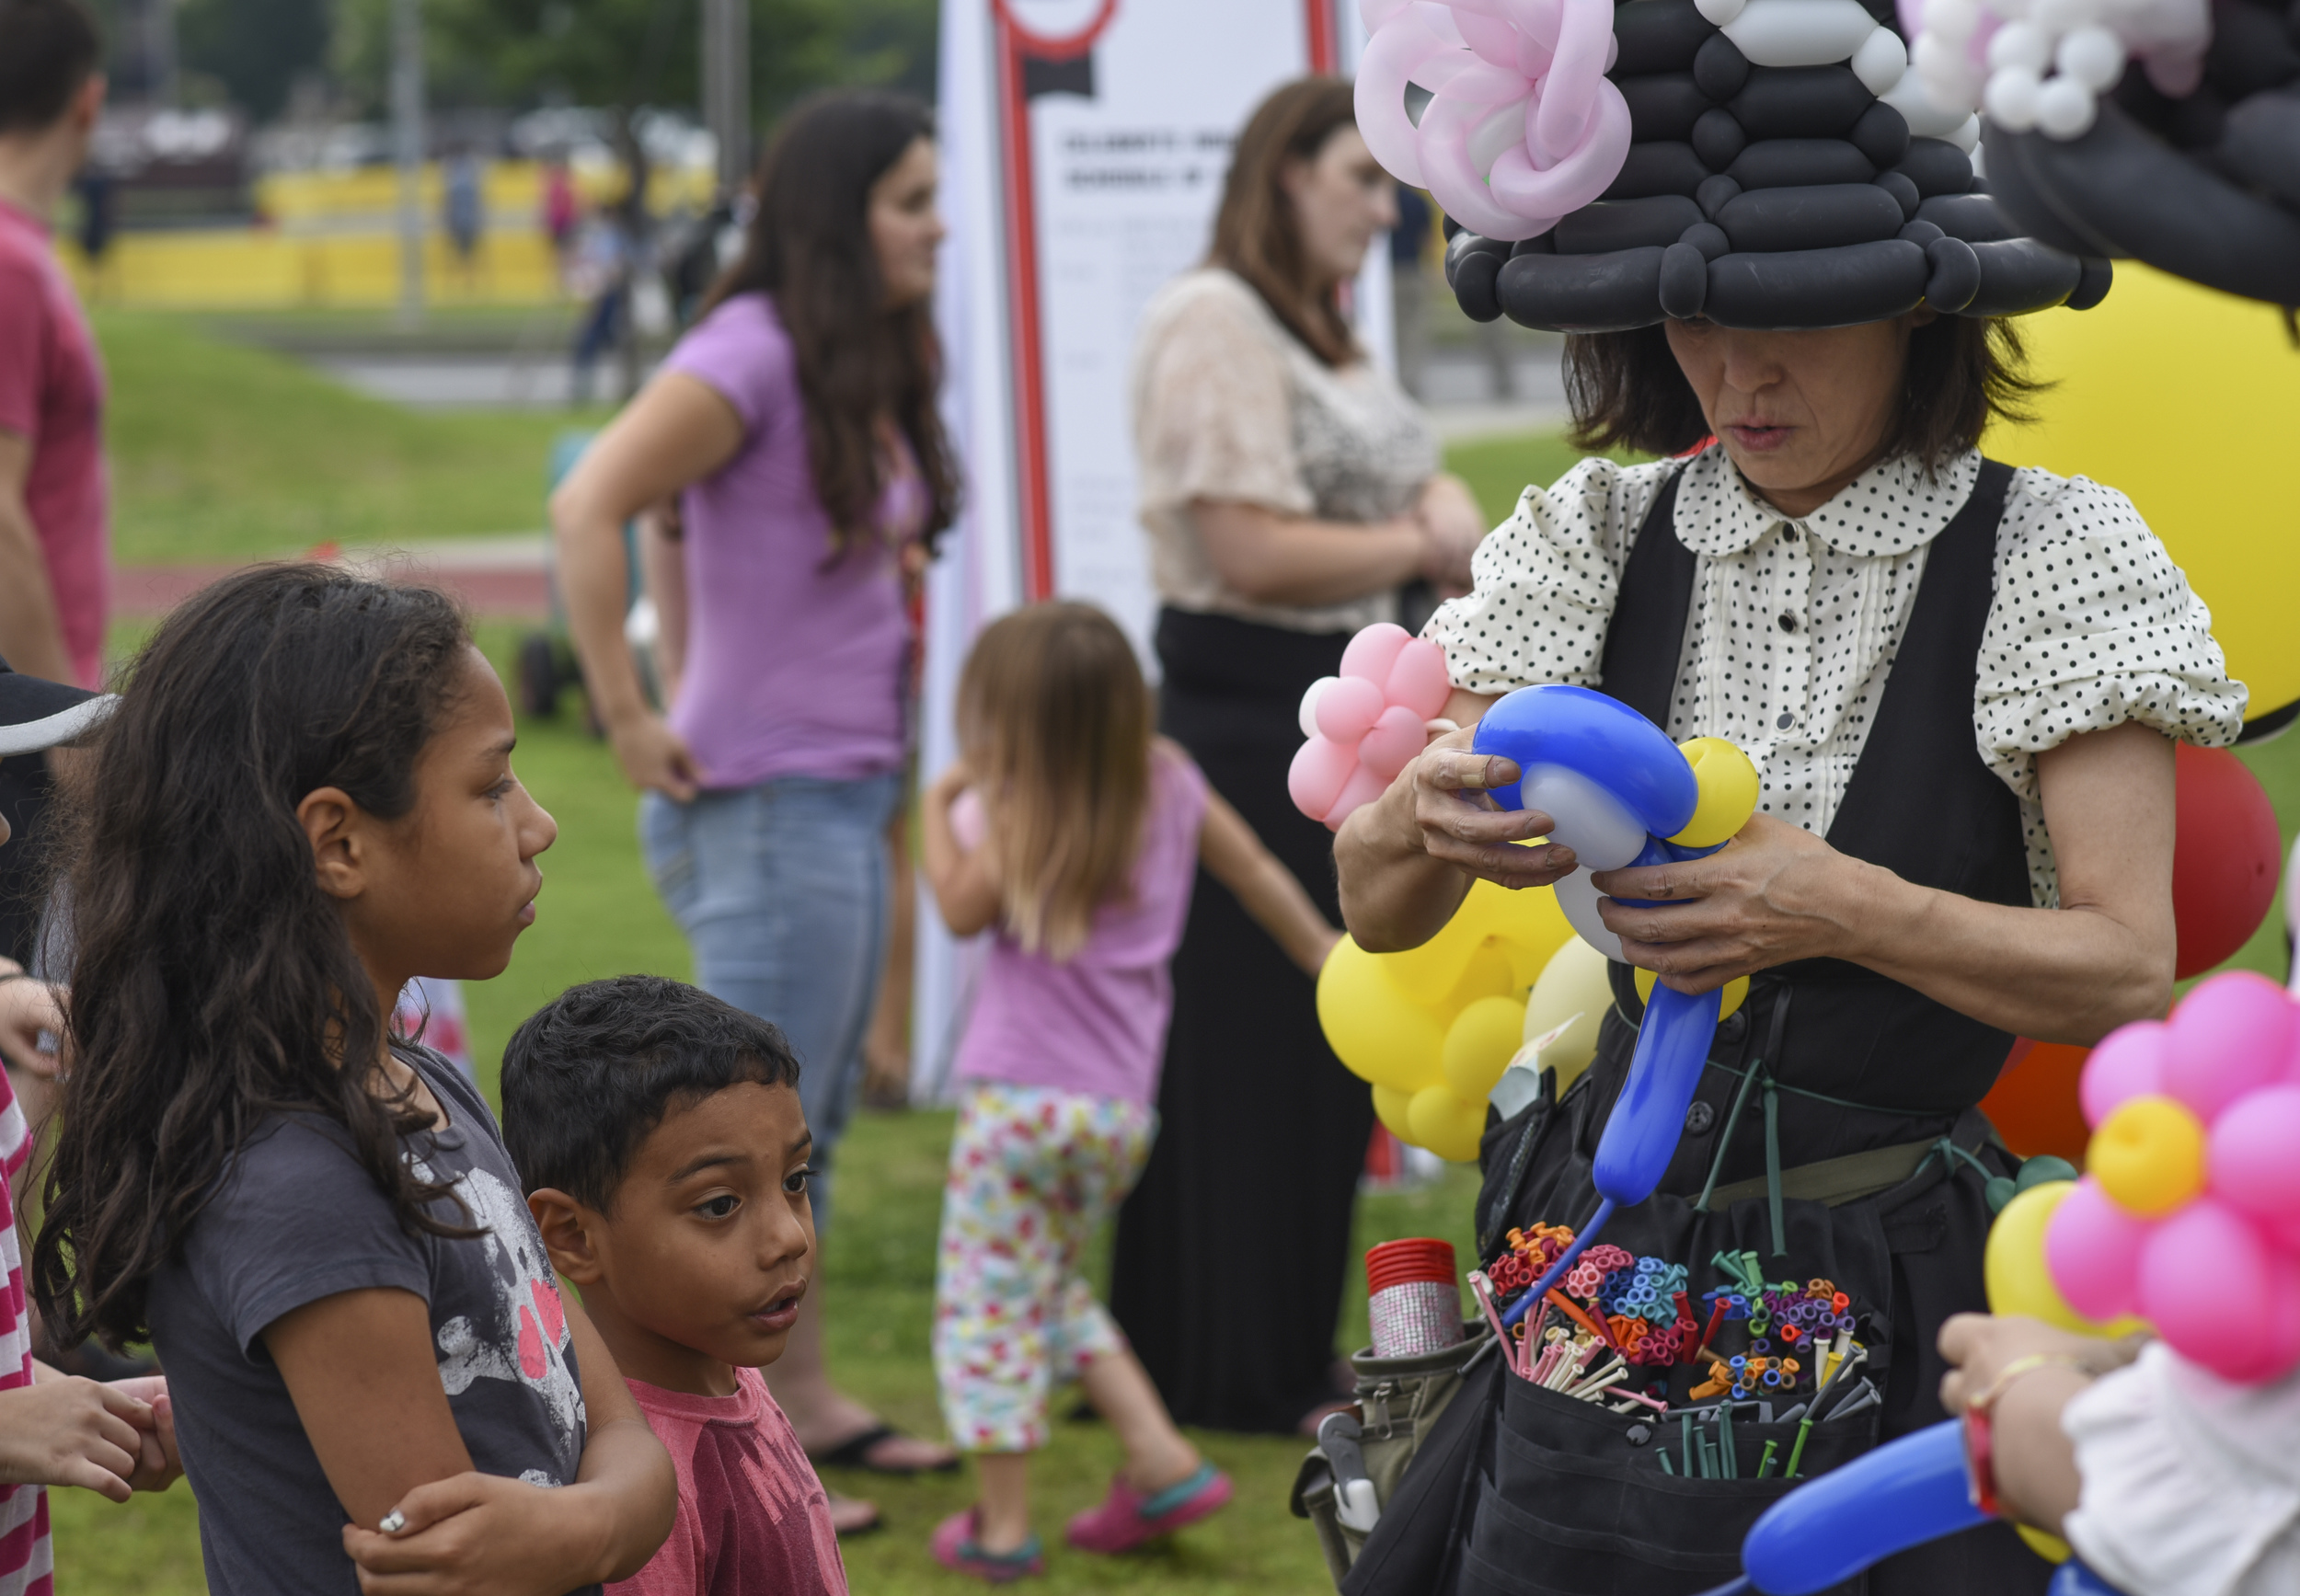 A balloon artist creates a balloon animal for children during Celebrate America at Yokota Air Base, Japan, July 2, 2015. Celebrate America is hosted every year to celebrate America's Independence Day and enhance esprit de corps. (U.S. Air Force photo by Senior Airman Michael Washburn/Released)